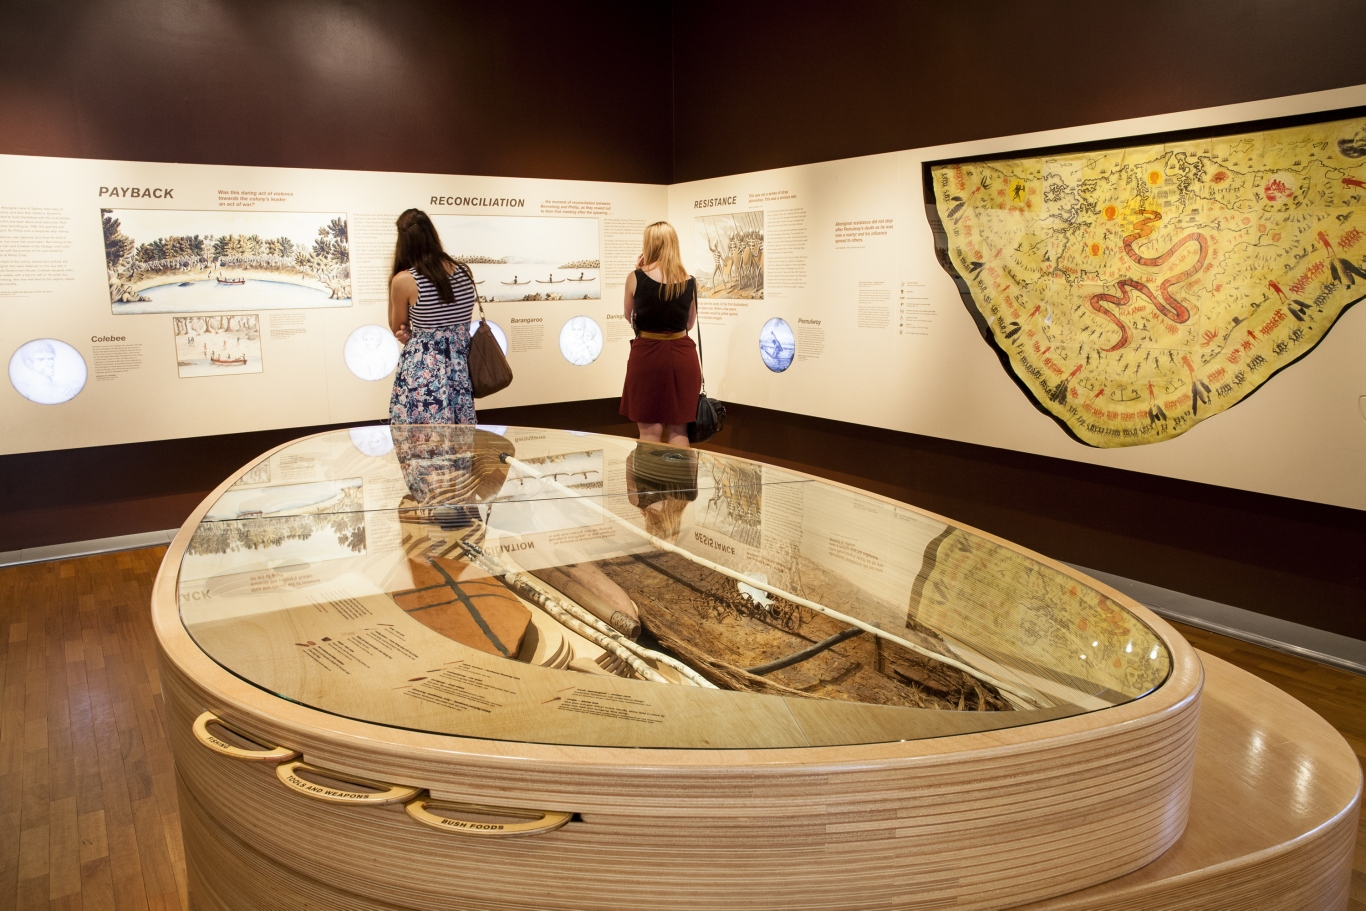 Visitors look at the Gadigal place display. Image shows a large showcase in the middle of the room with people reading text and looking at objects on the wall around the room.